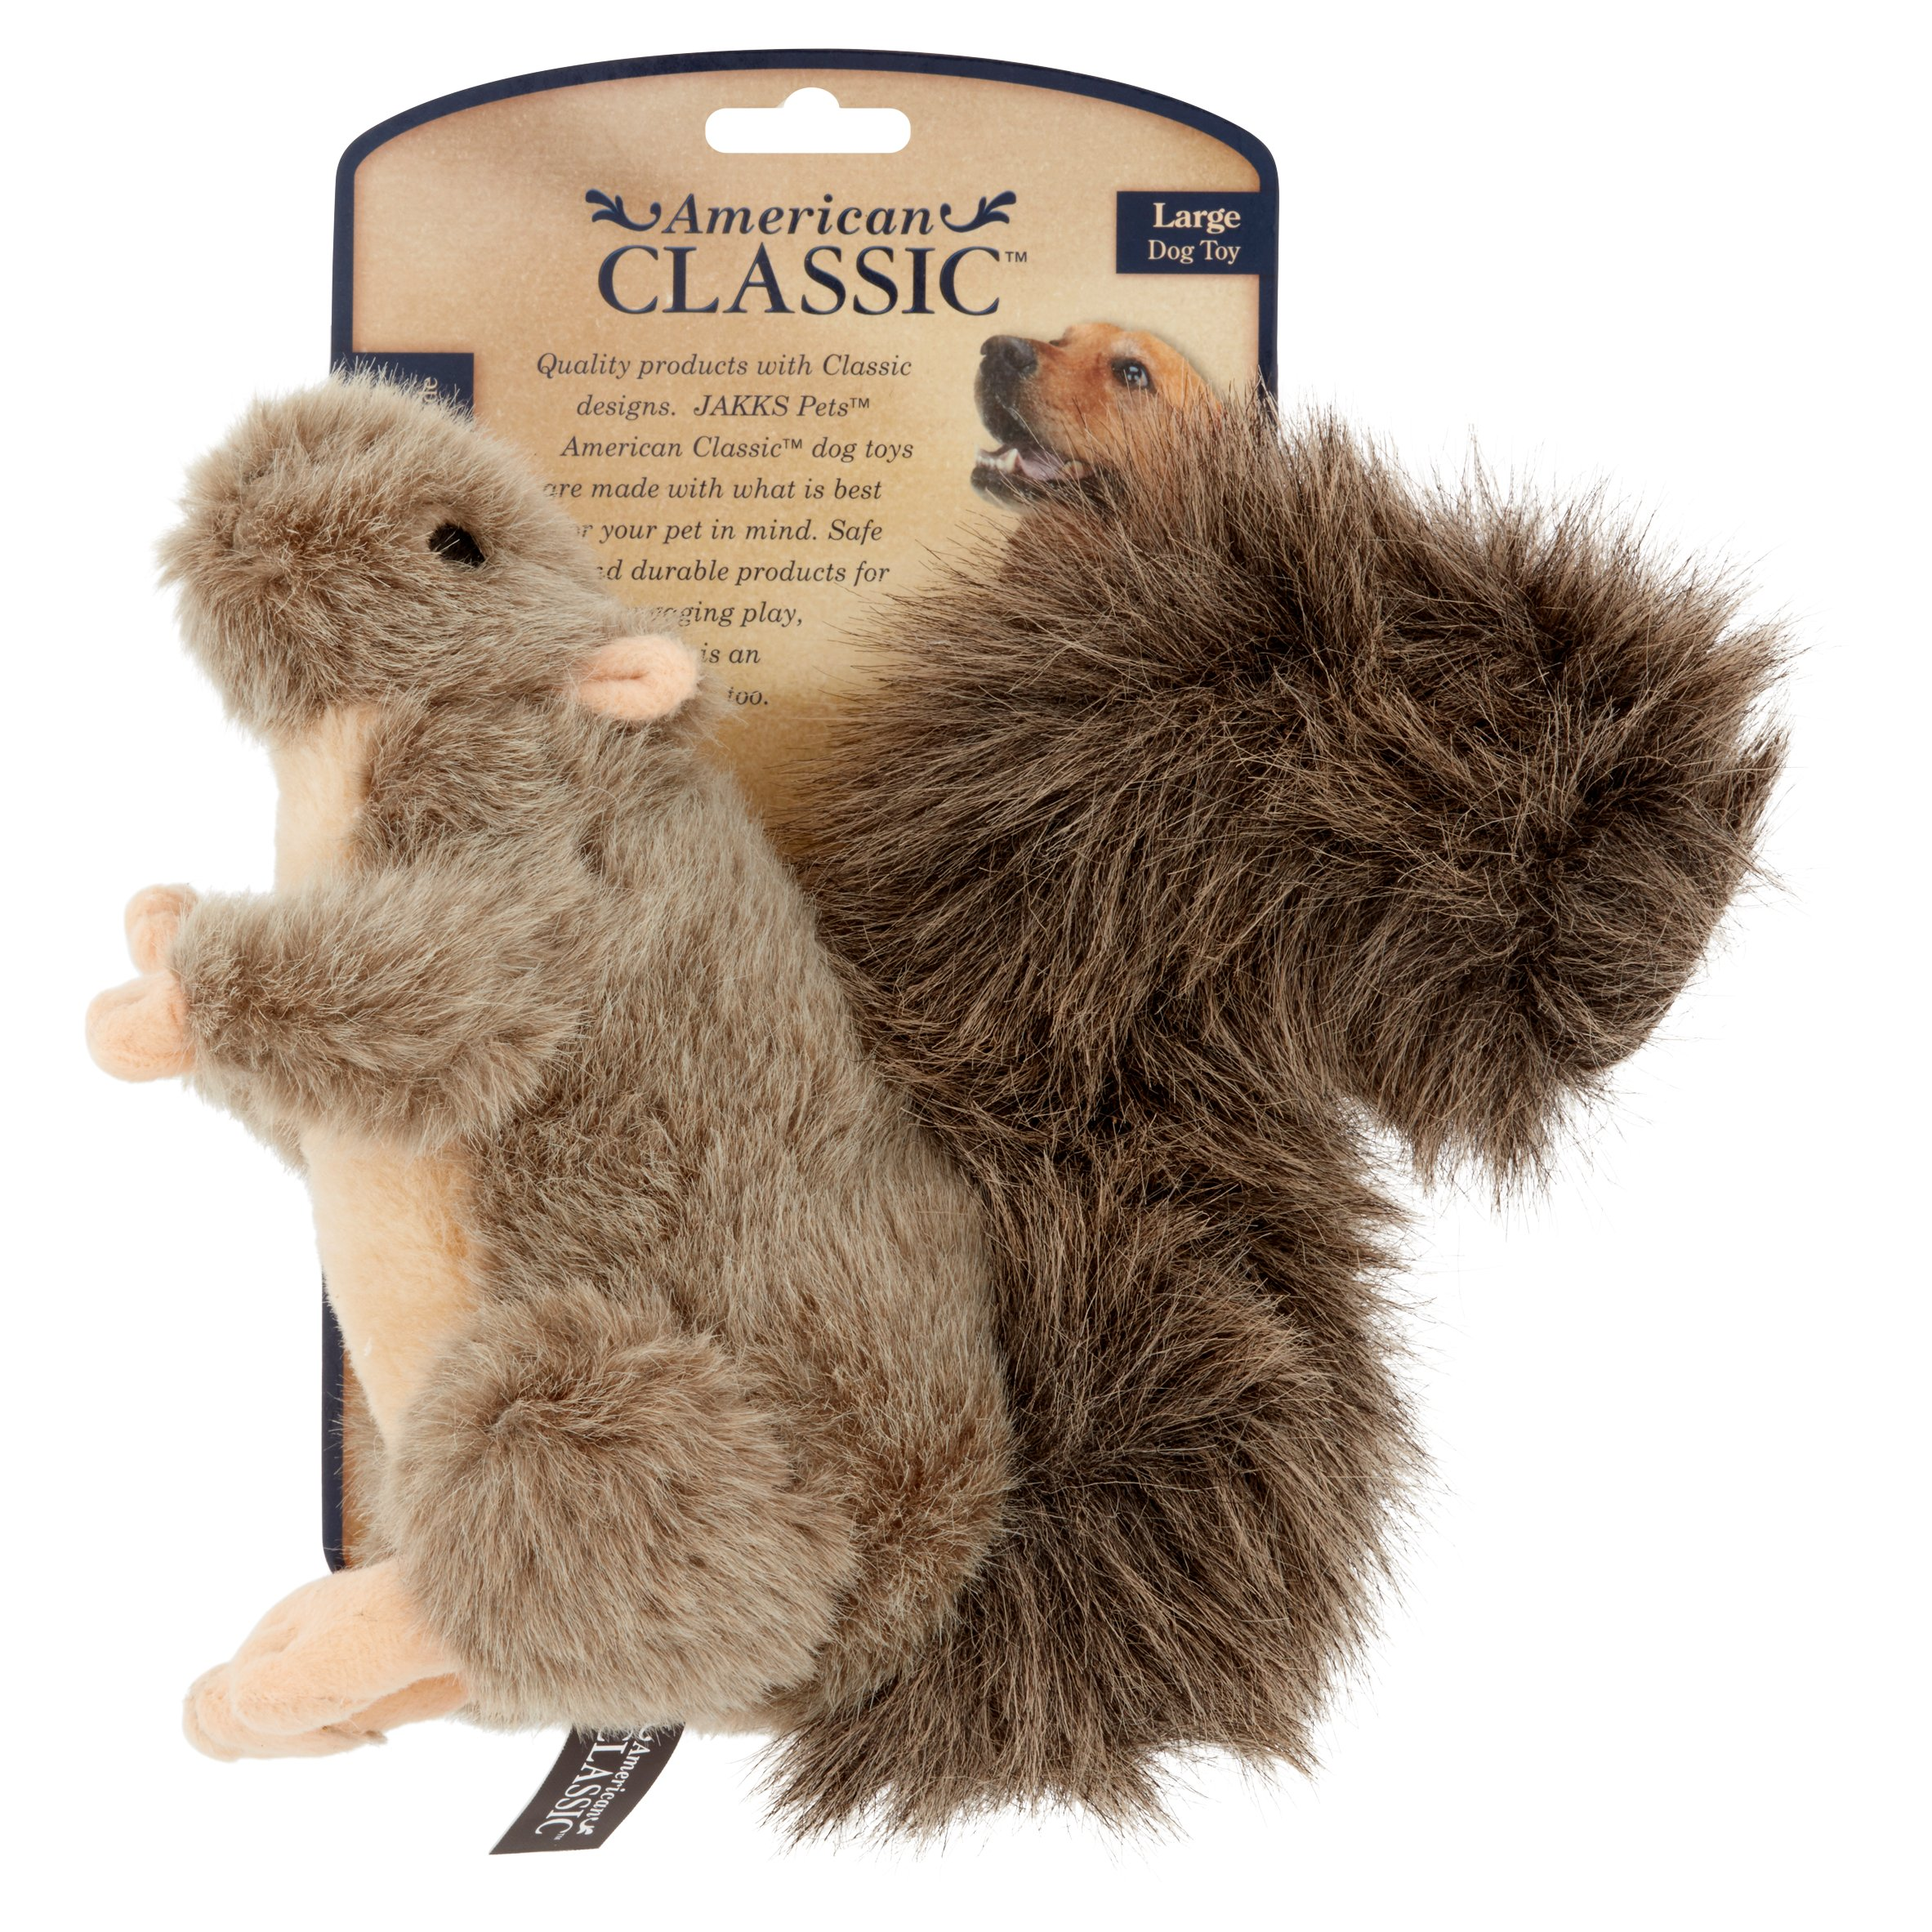 American Classic Squirrel Large Dog Toy by Jakks Pacific, Inc.